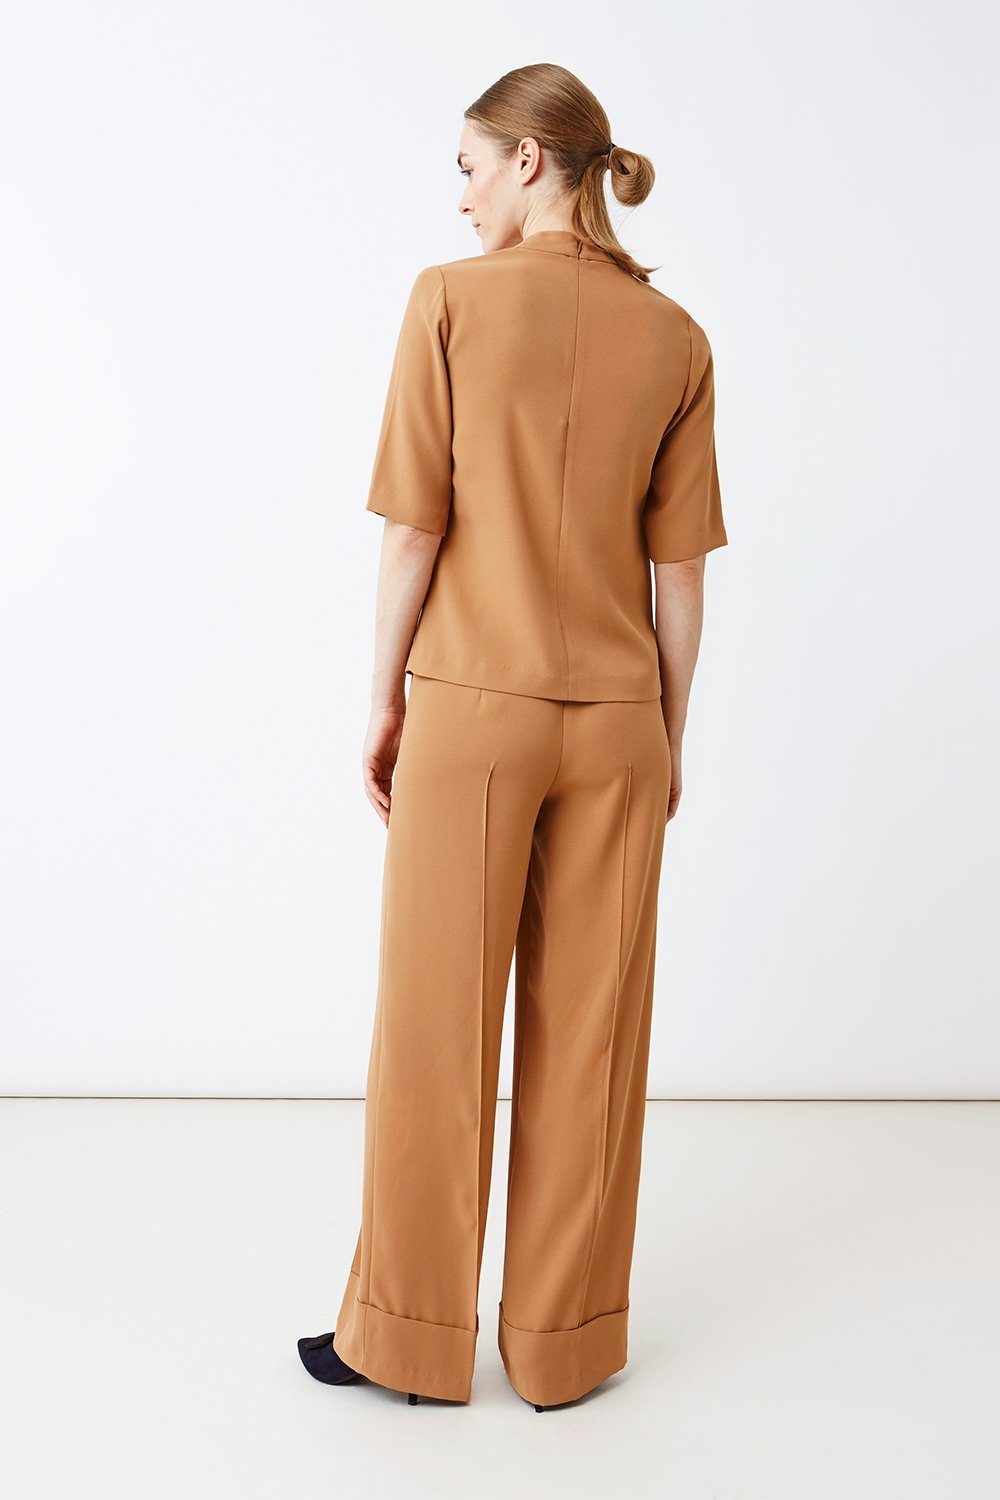 BOGAR TROUSERS - CAMEL Trousers Stylein